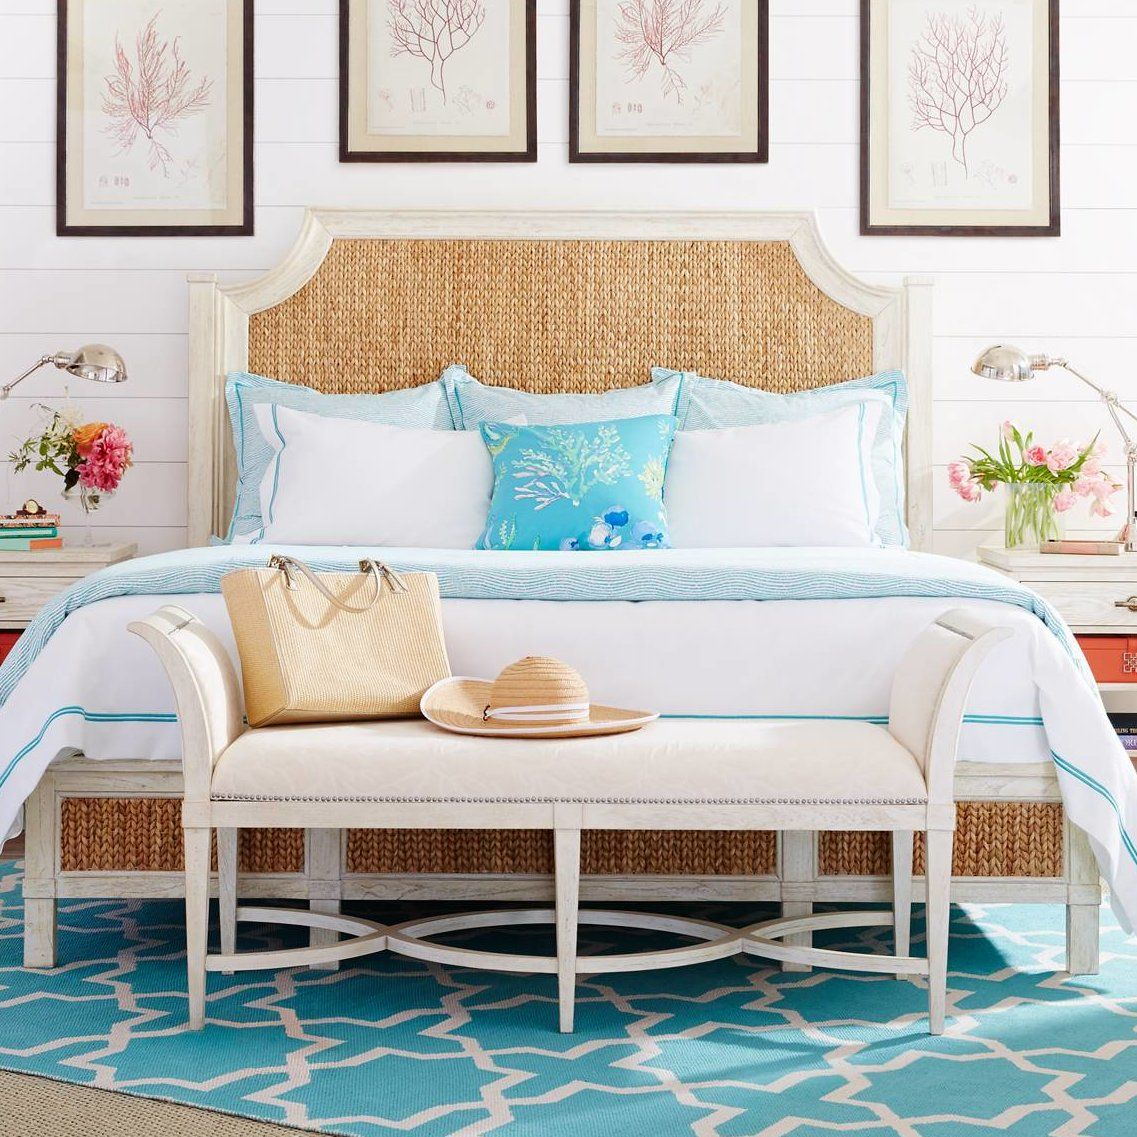 Resort Water Meadow Woven Platform Bed Bed, Bed sizes